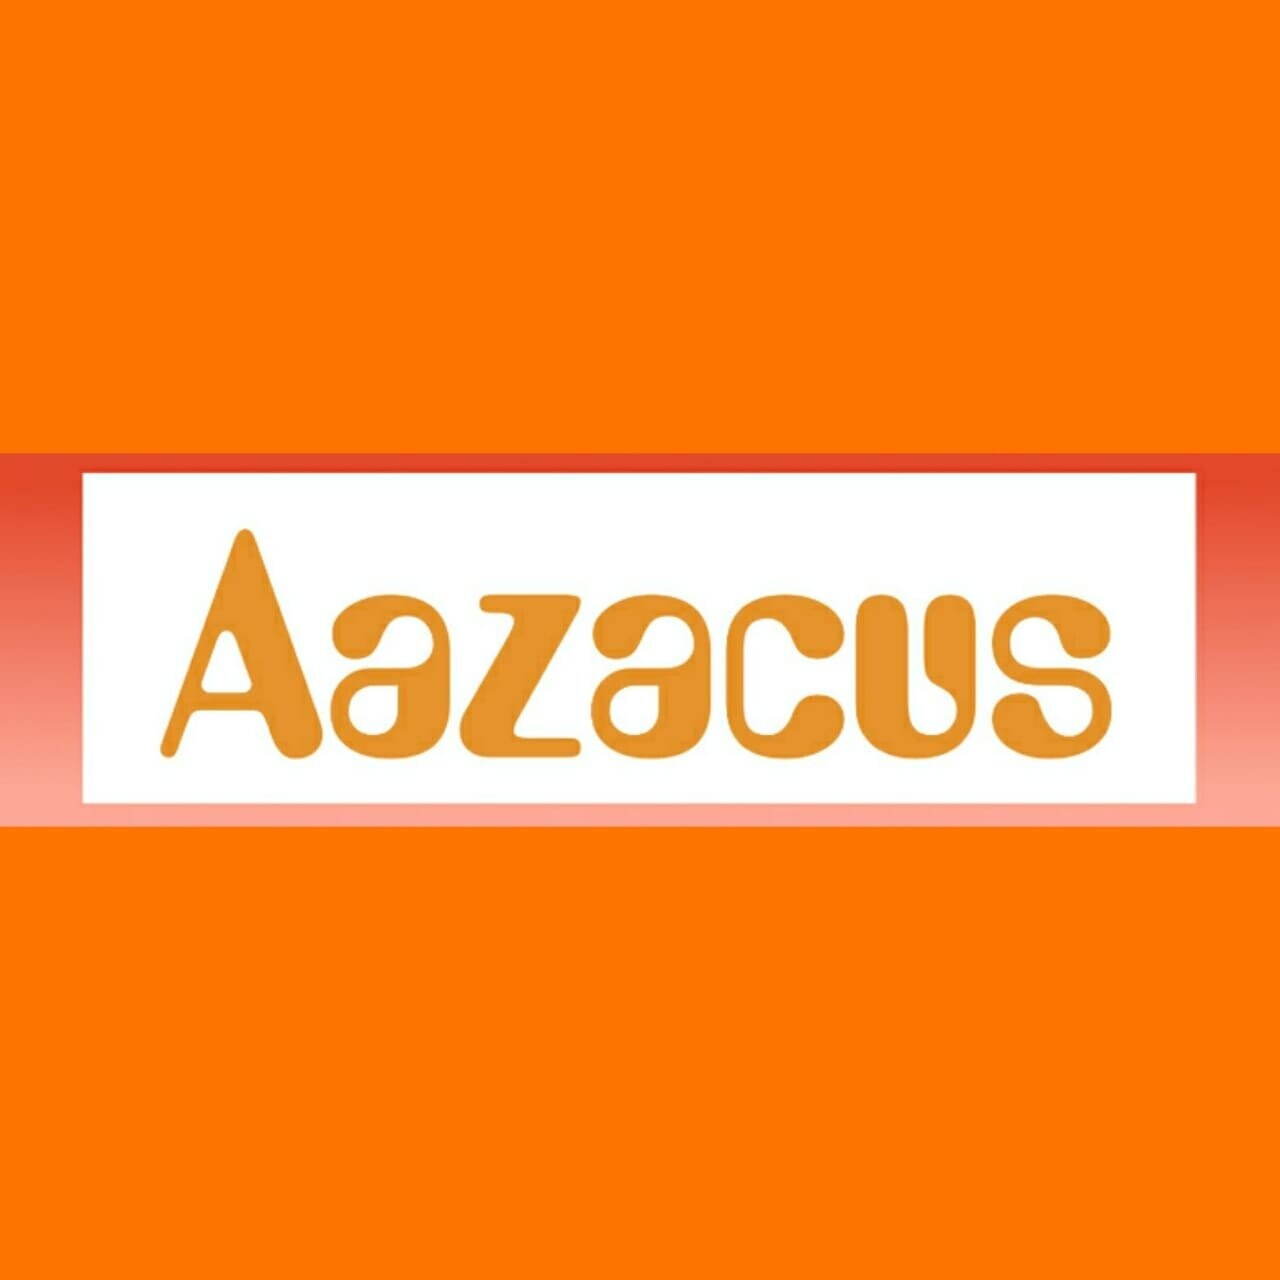 AAZACUS_OFFICIAL